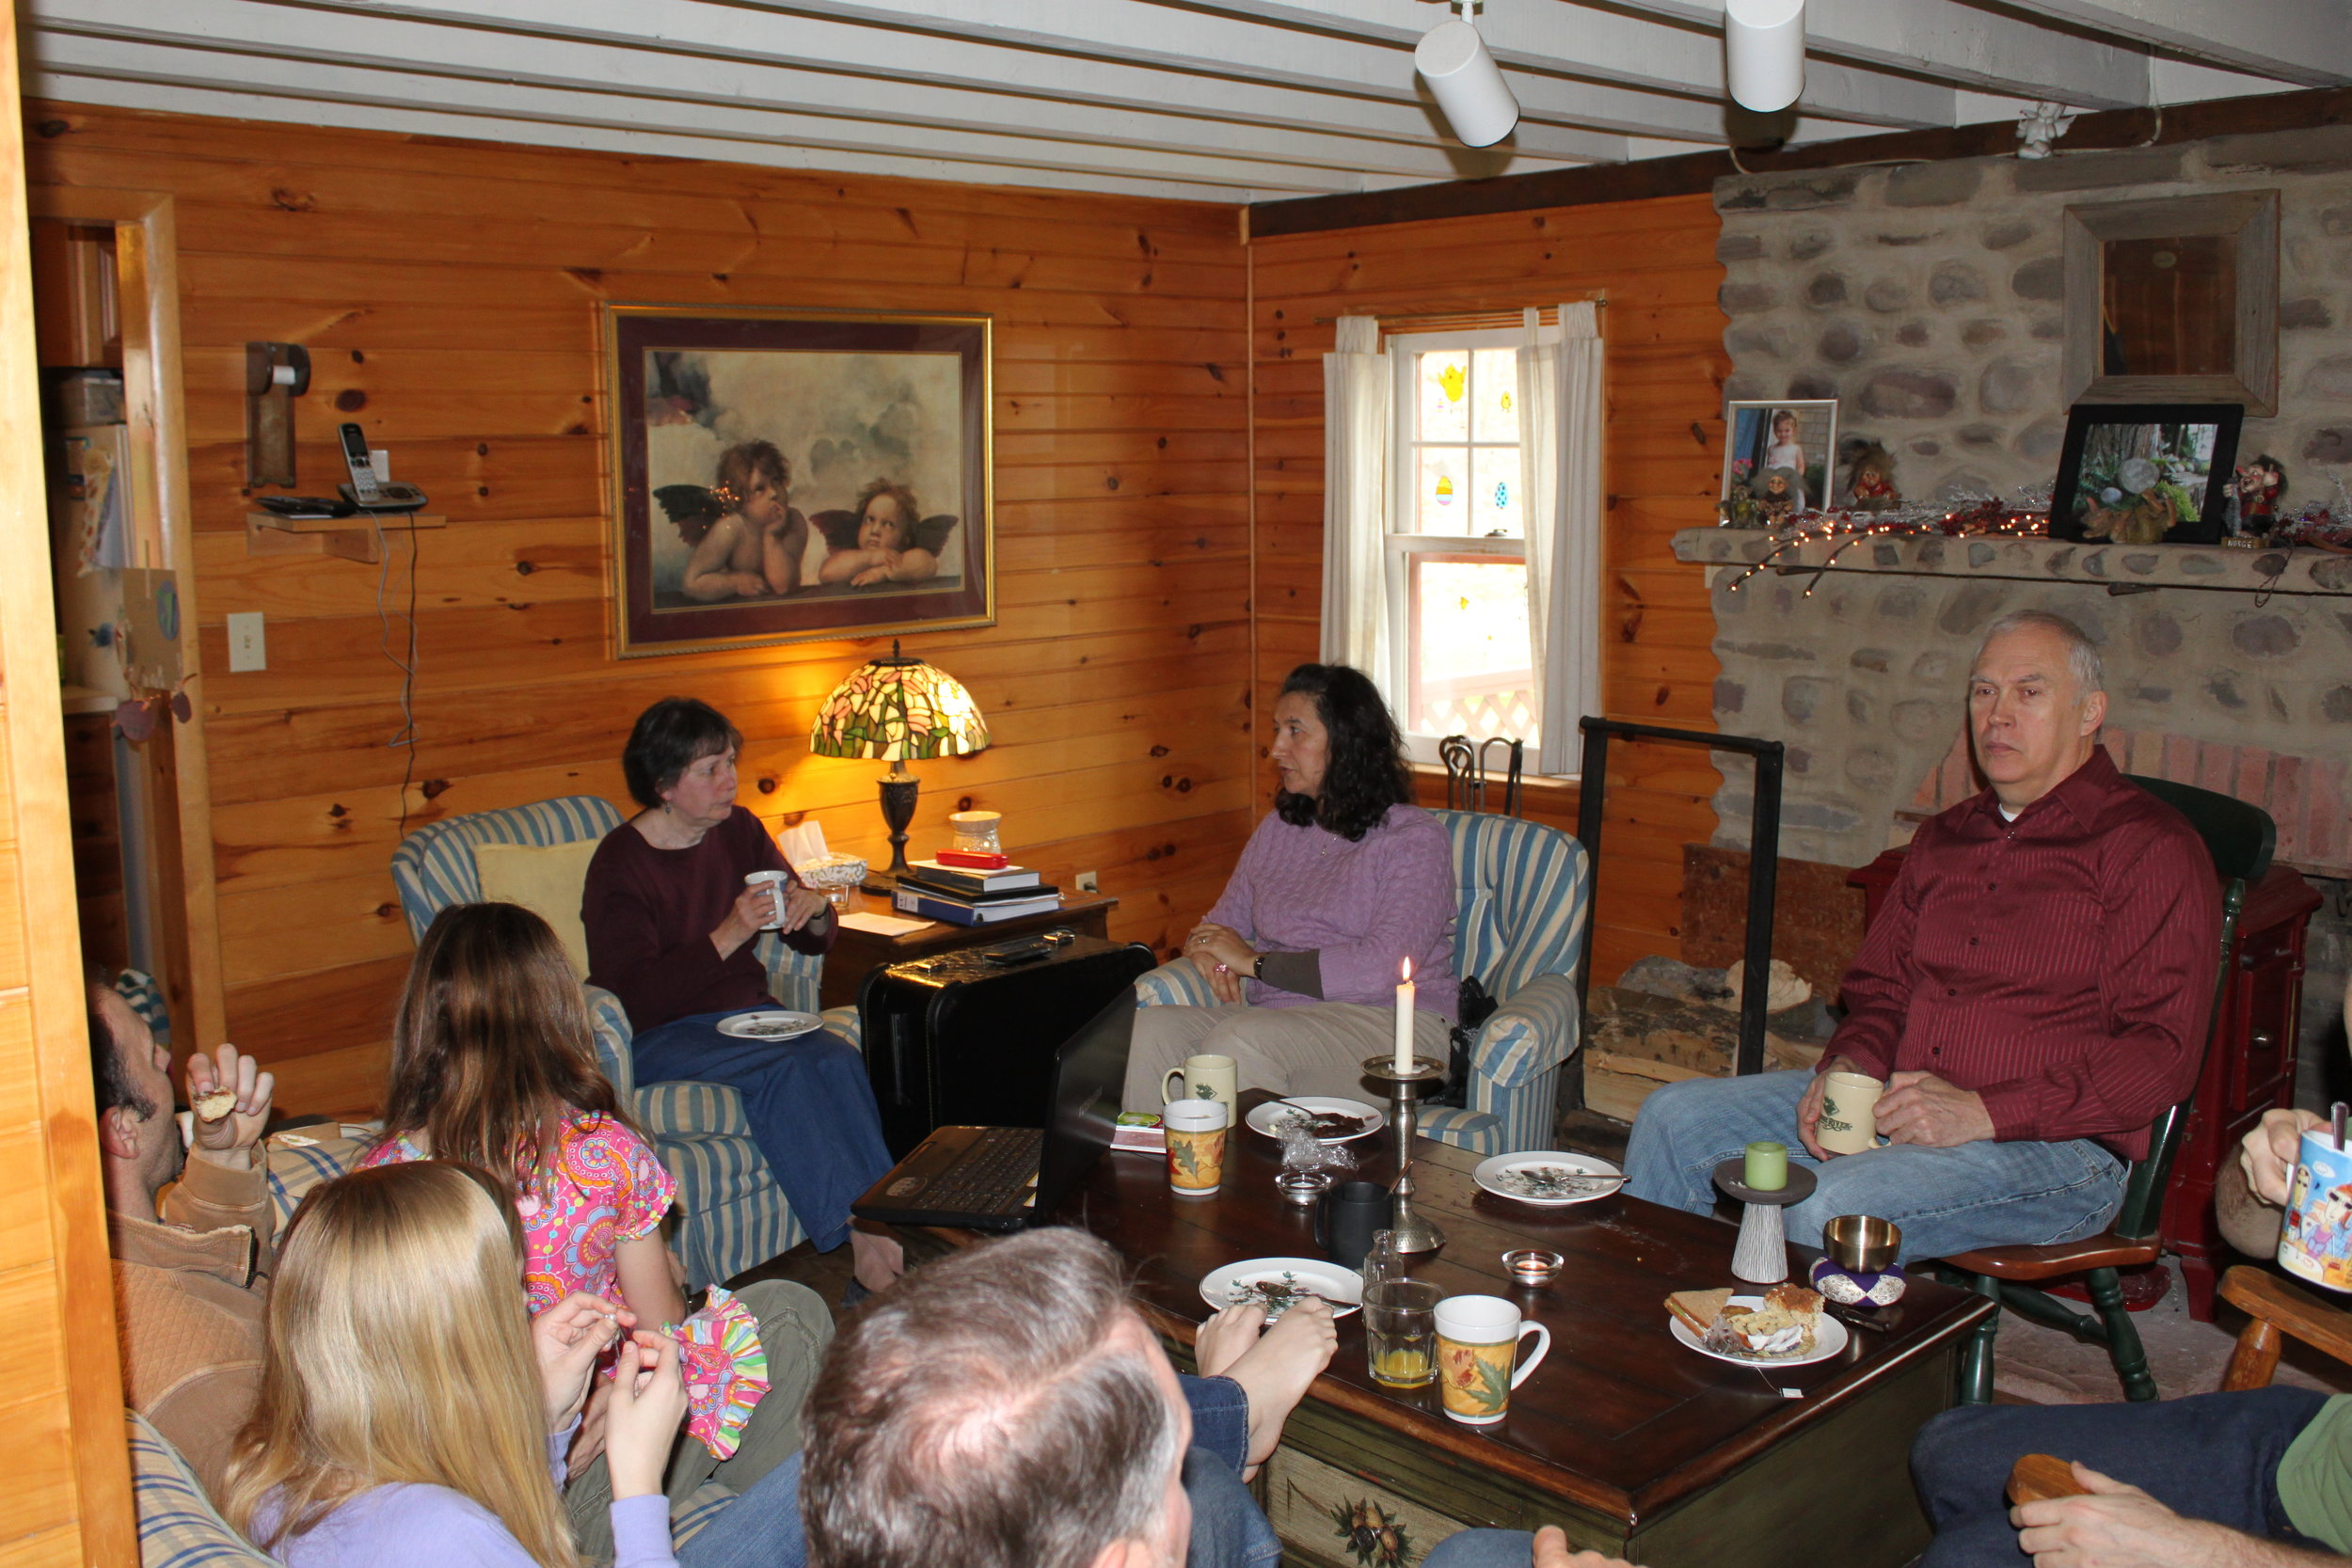 Gatherings for birthdays, anniversaries and more at Wellnesste Lodge.